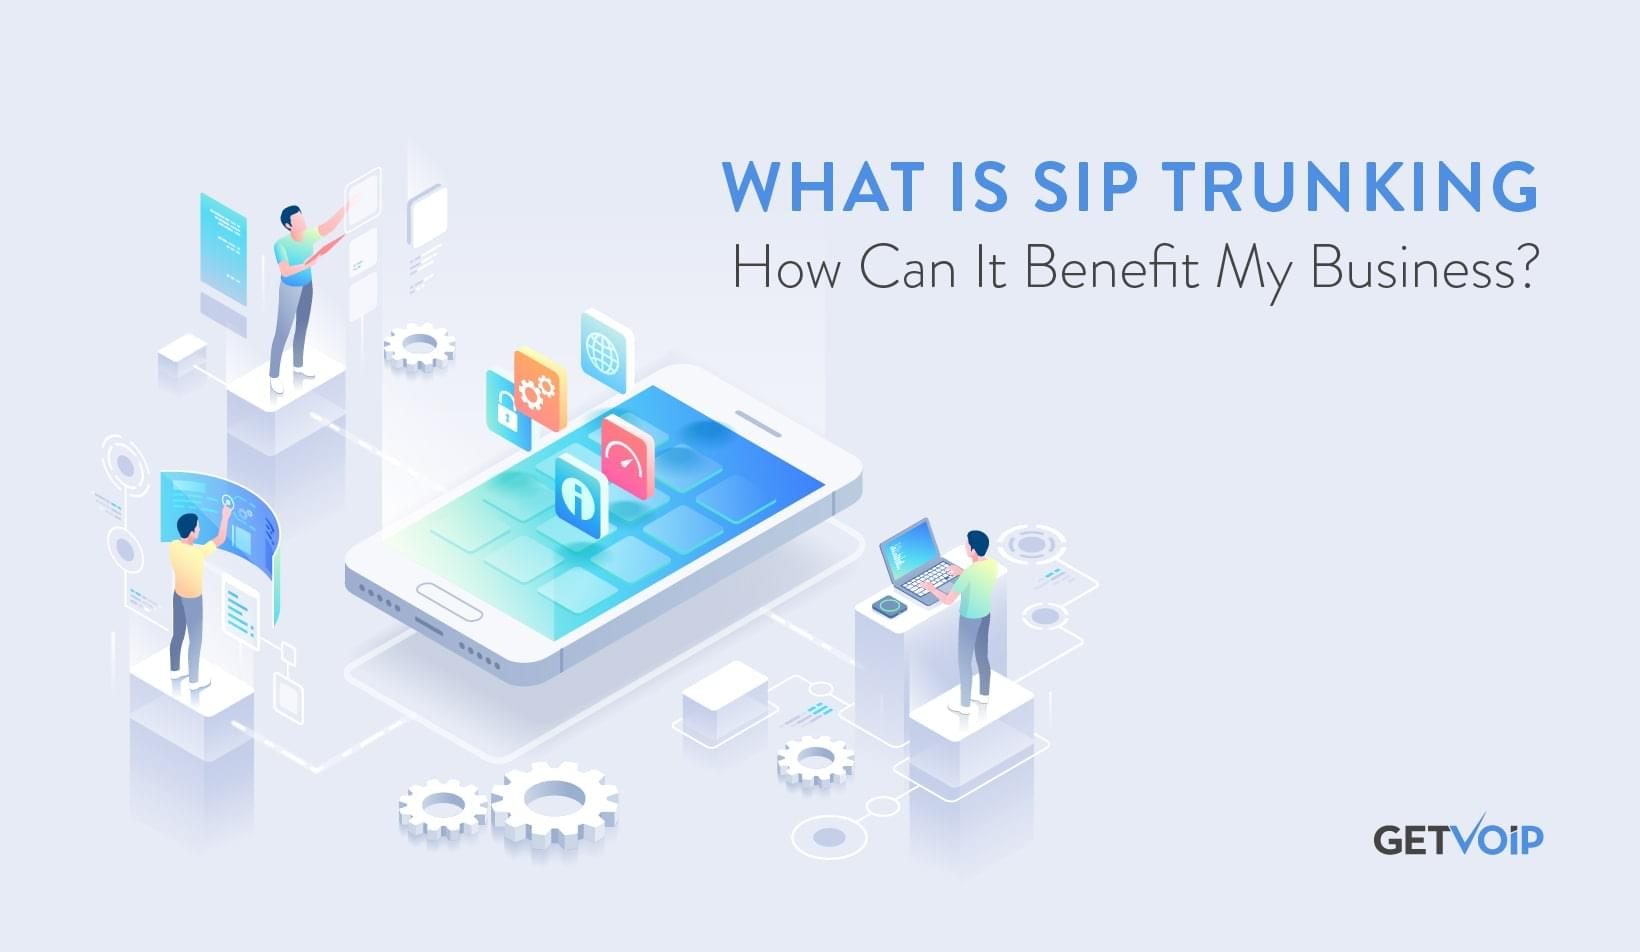 What is SIP Trunking and How Can It Benefit My Business?